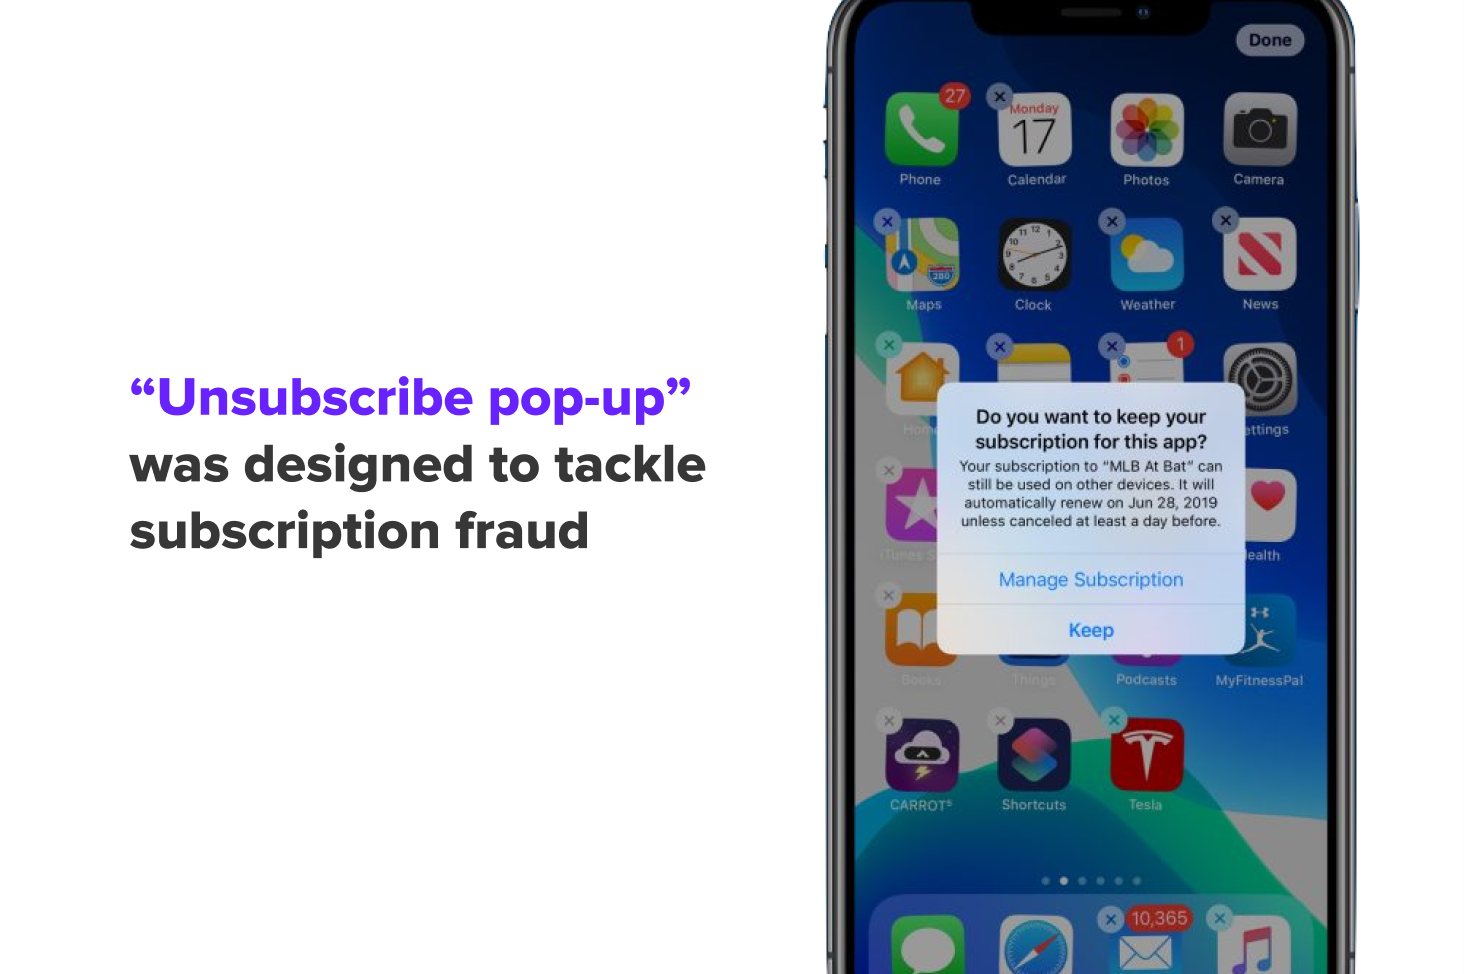 Unsubscribe pop-up on iOS